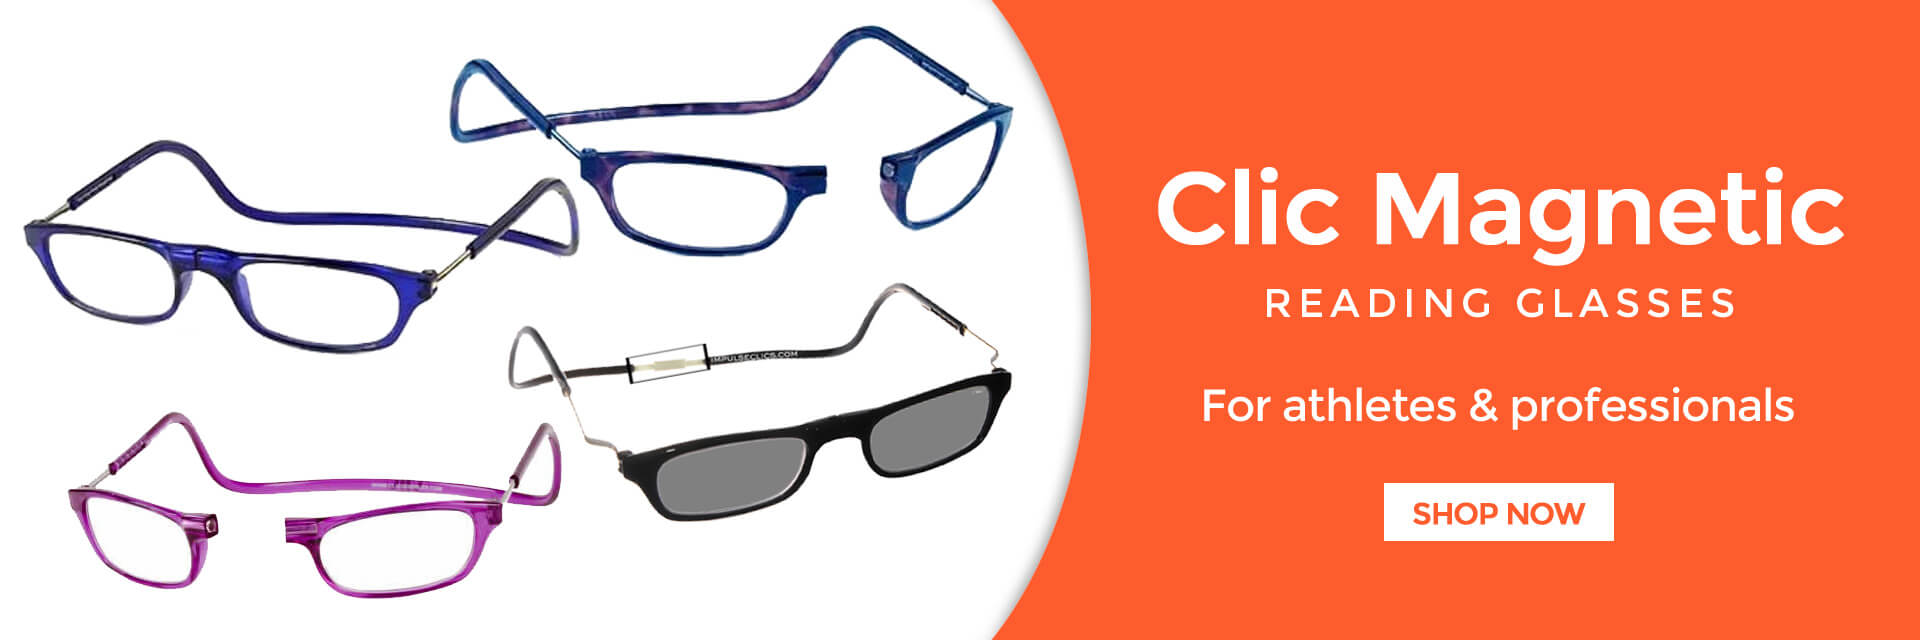 Clic Magnetic Glasses